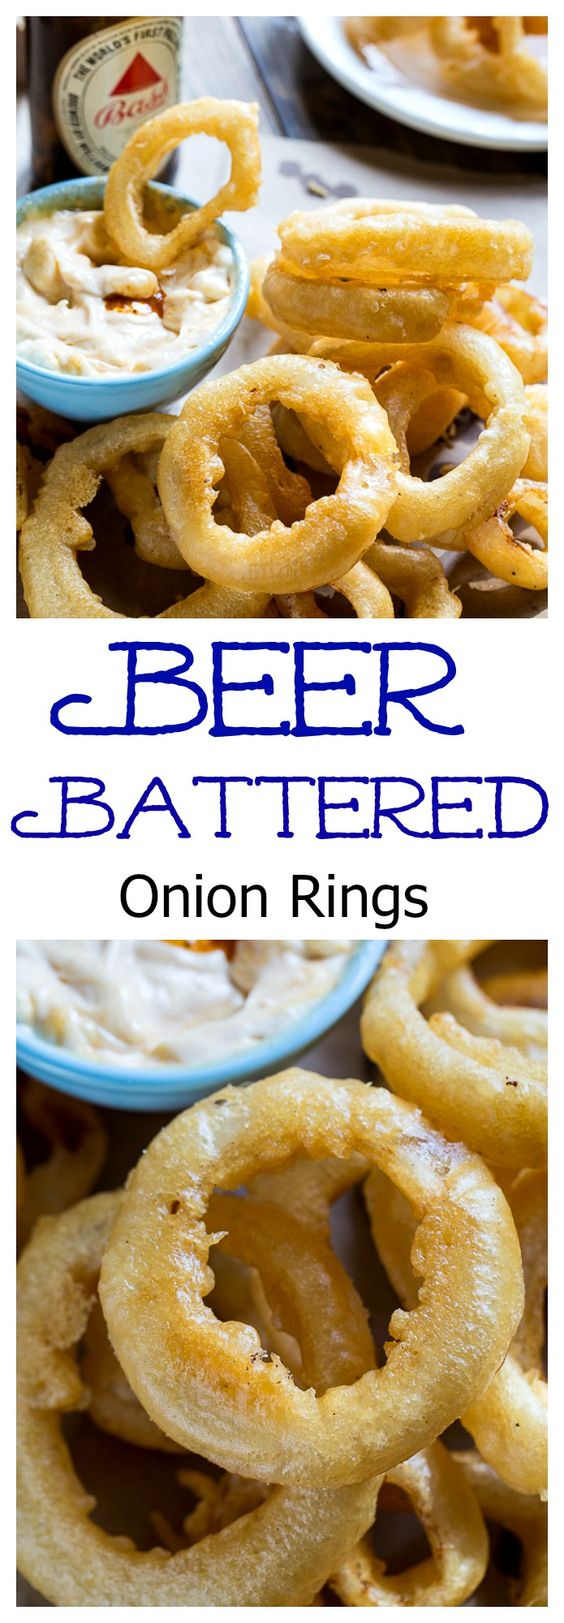 I Hate Onions But I Love Onion Rings